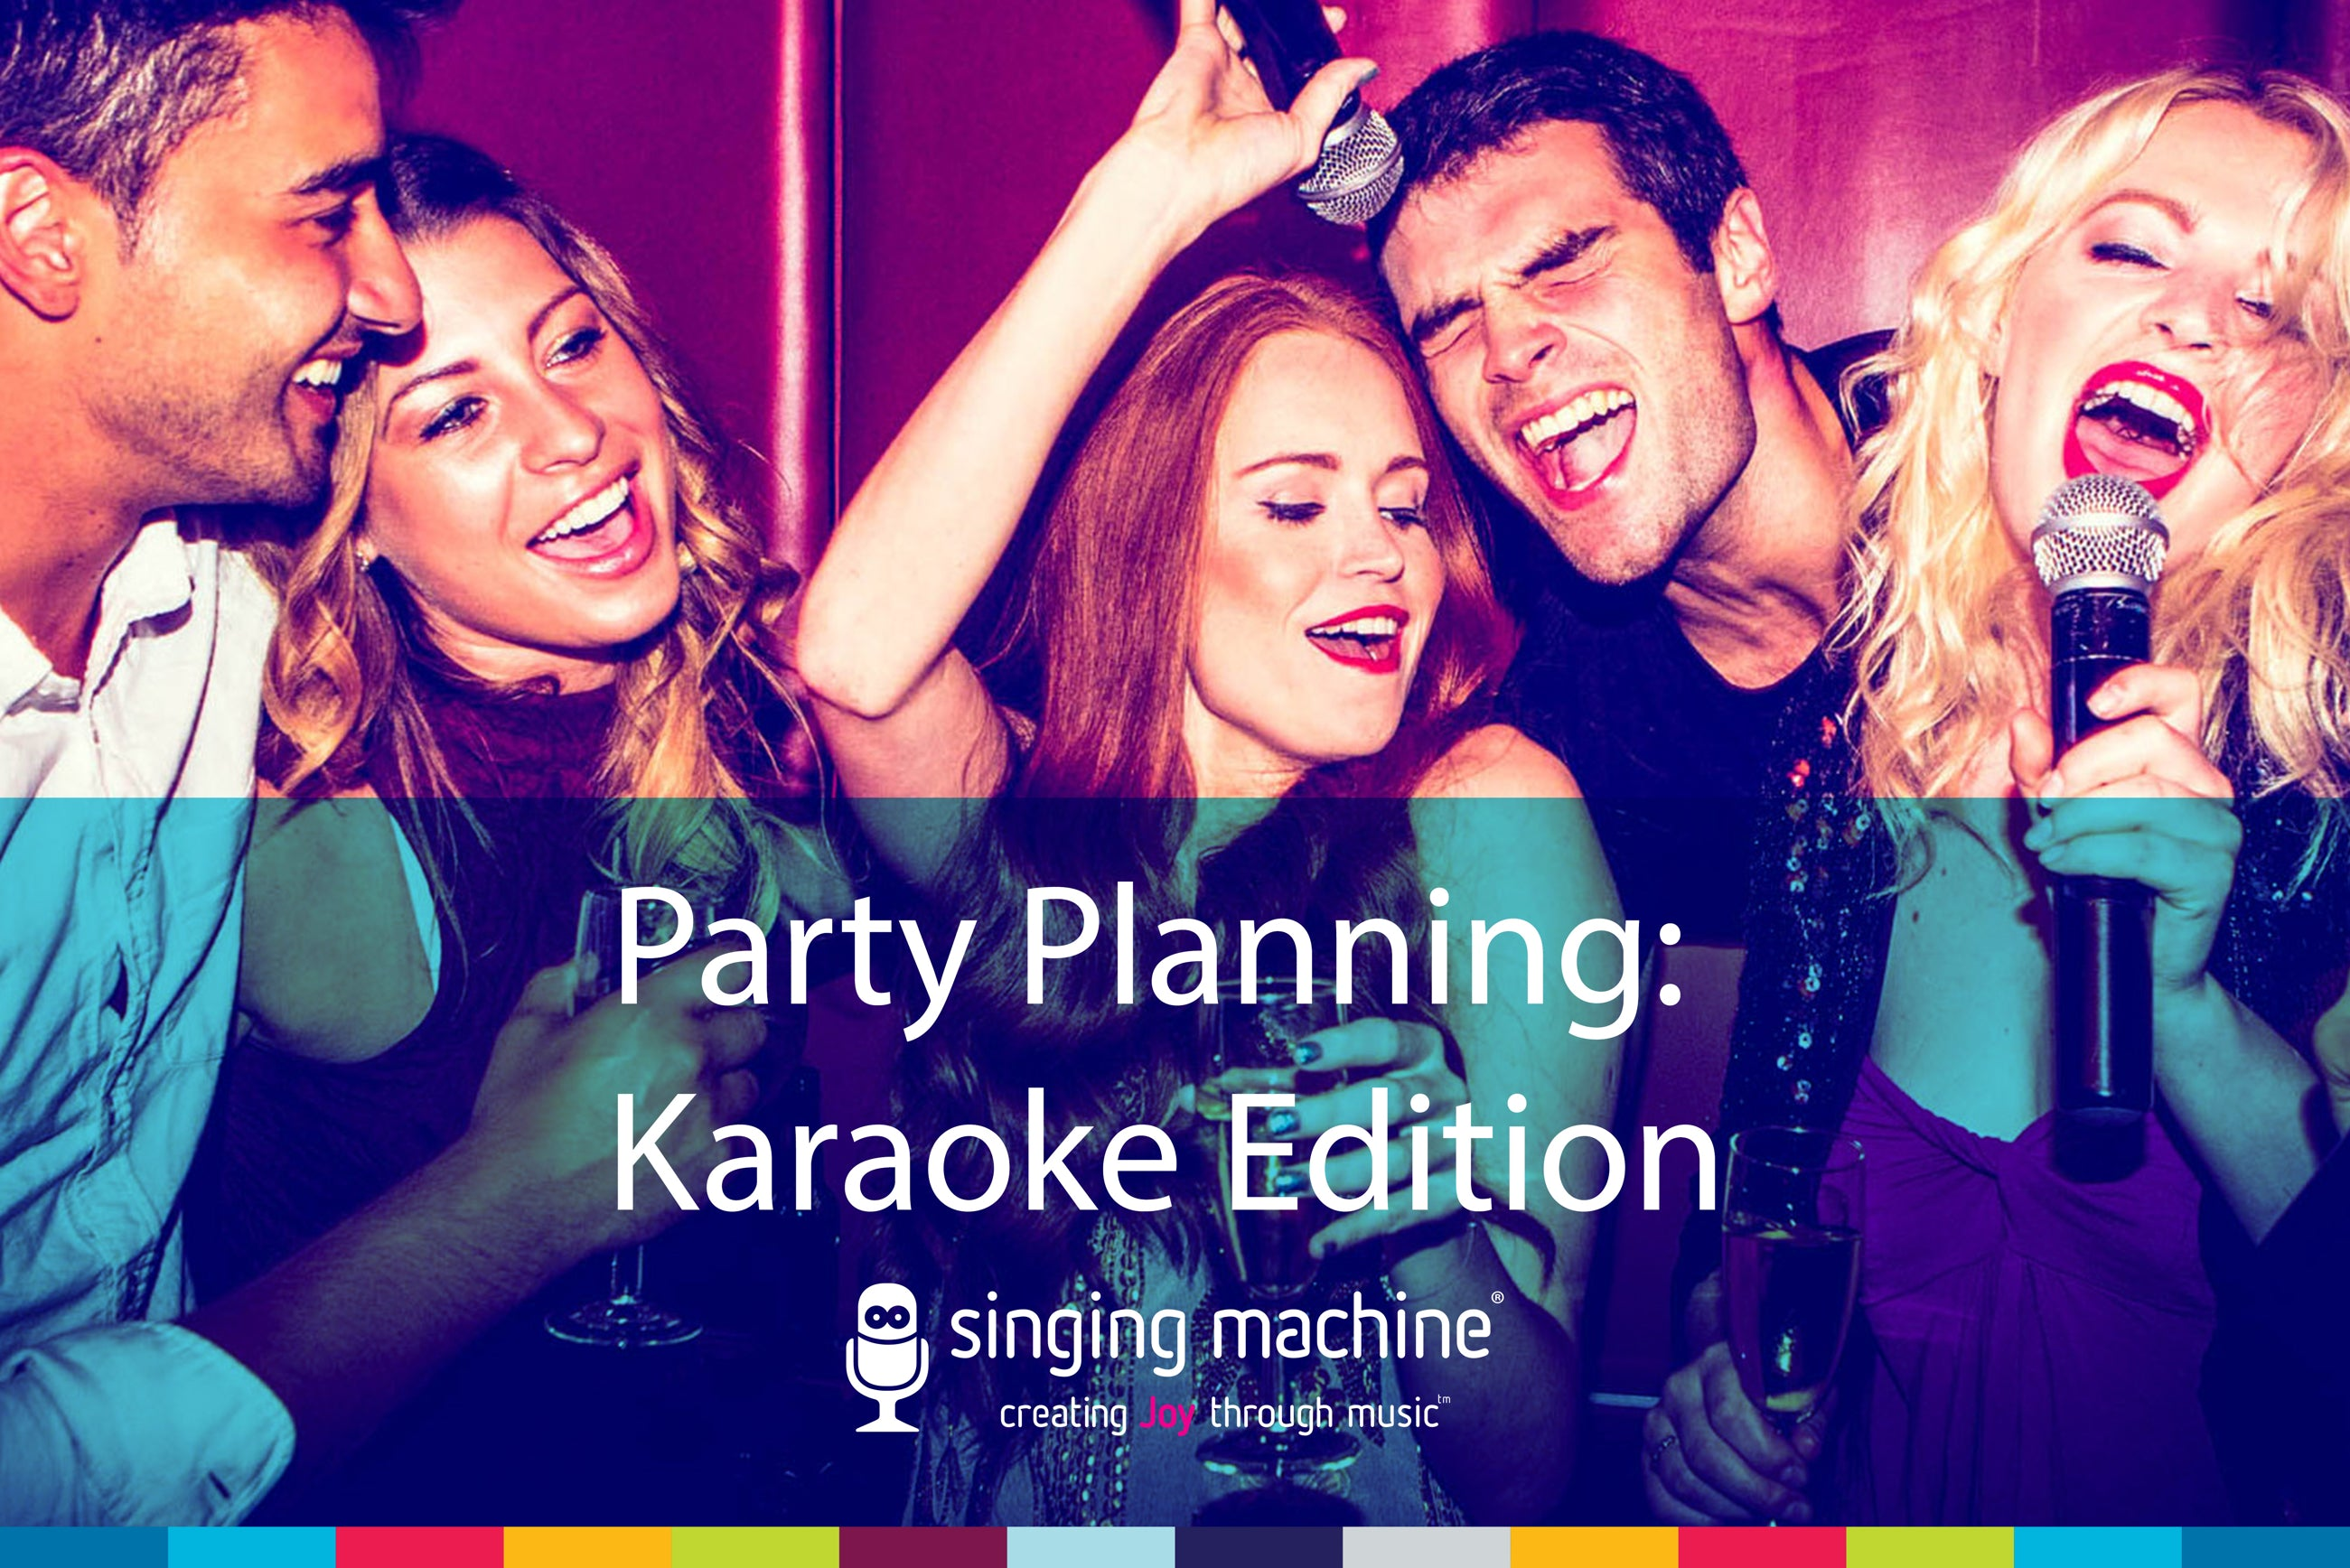 Party Planning: Karaoke Edition